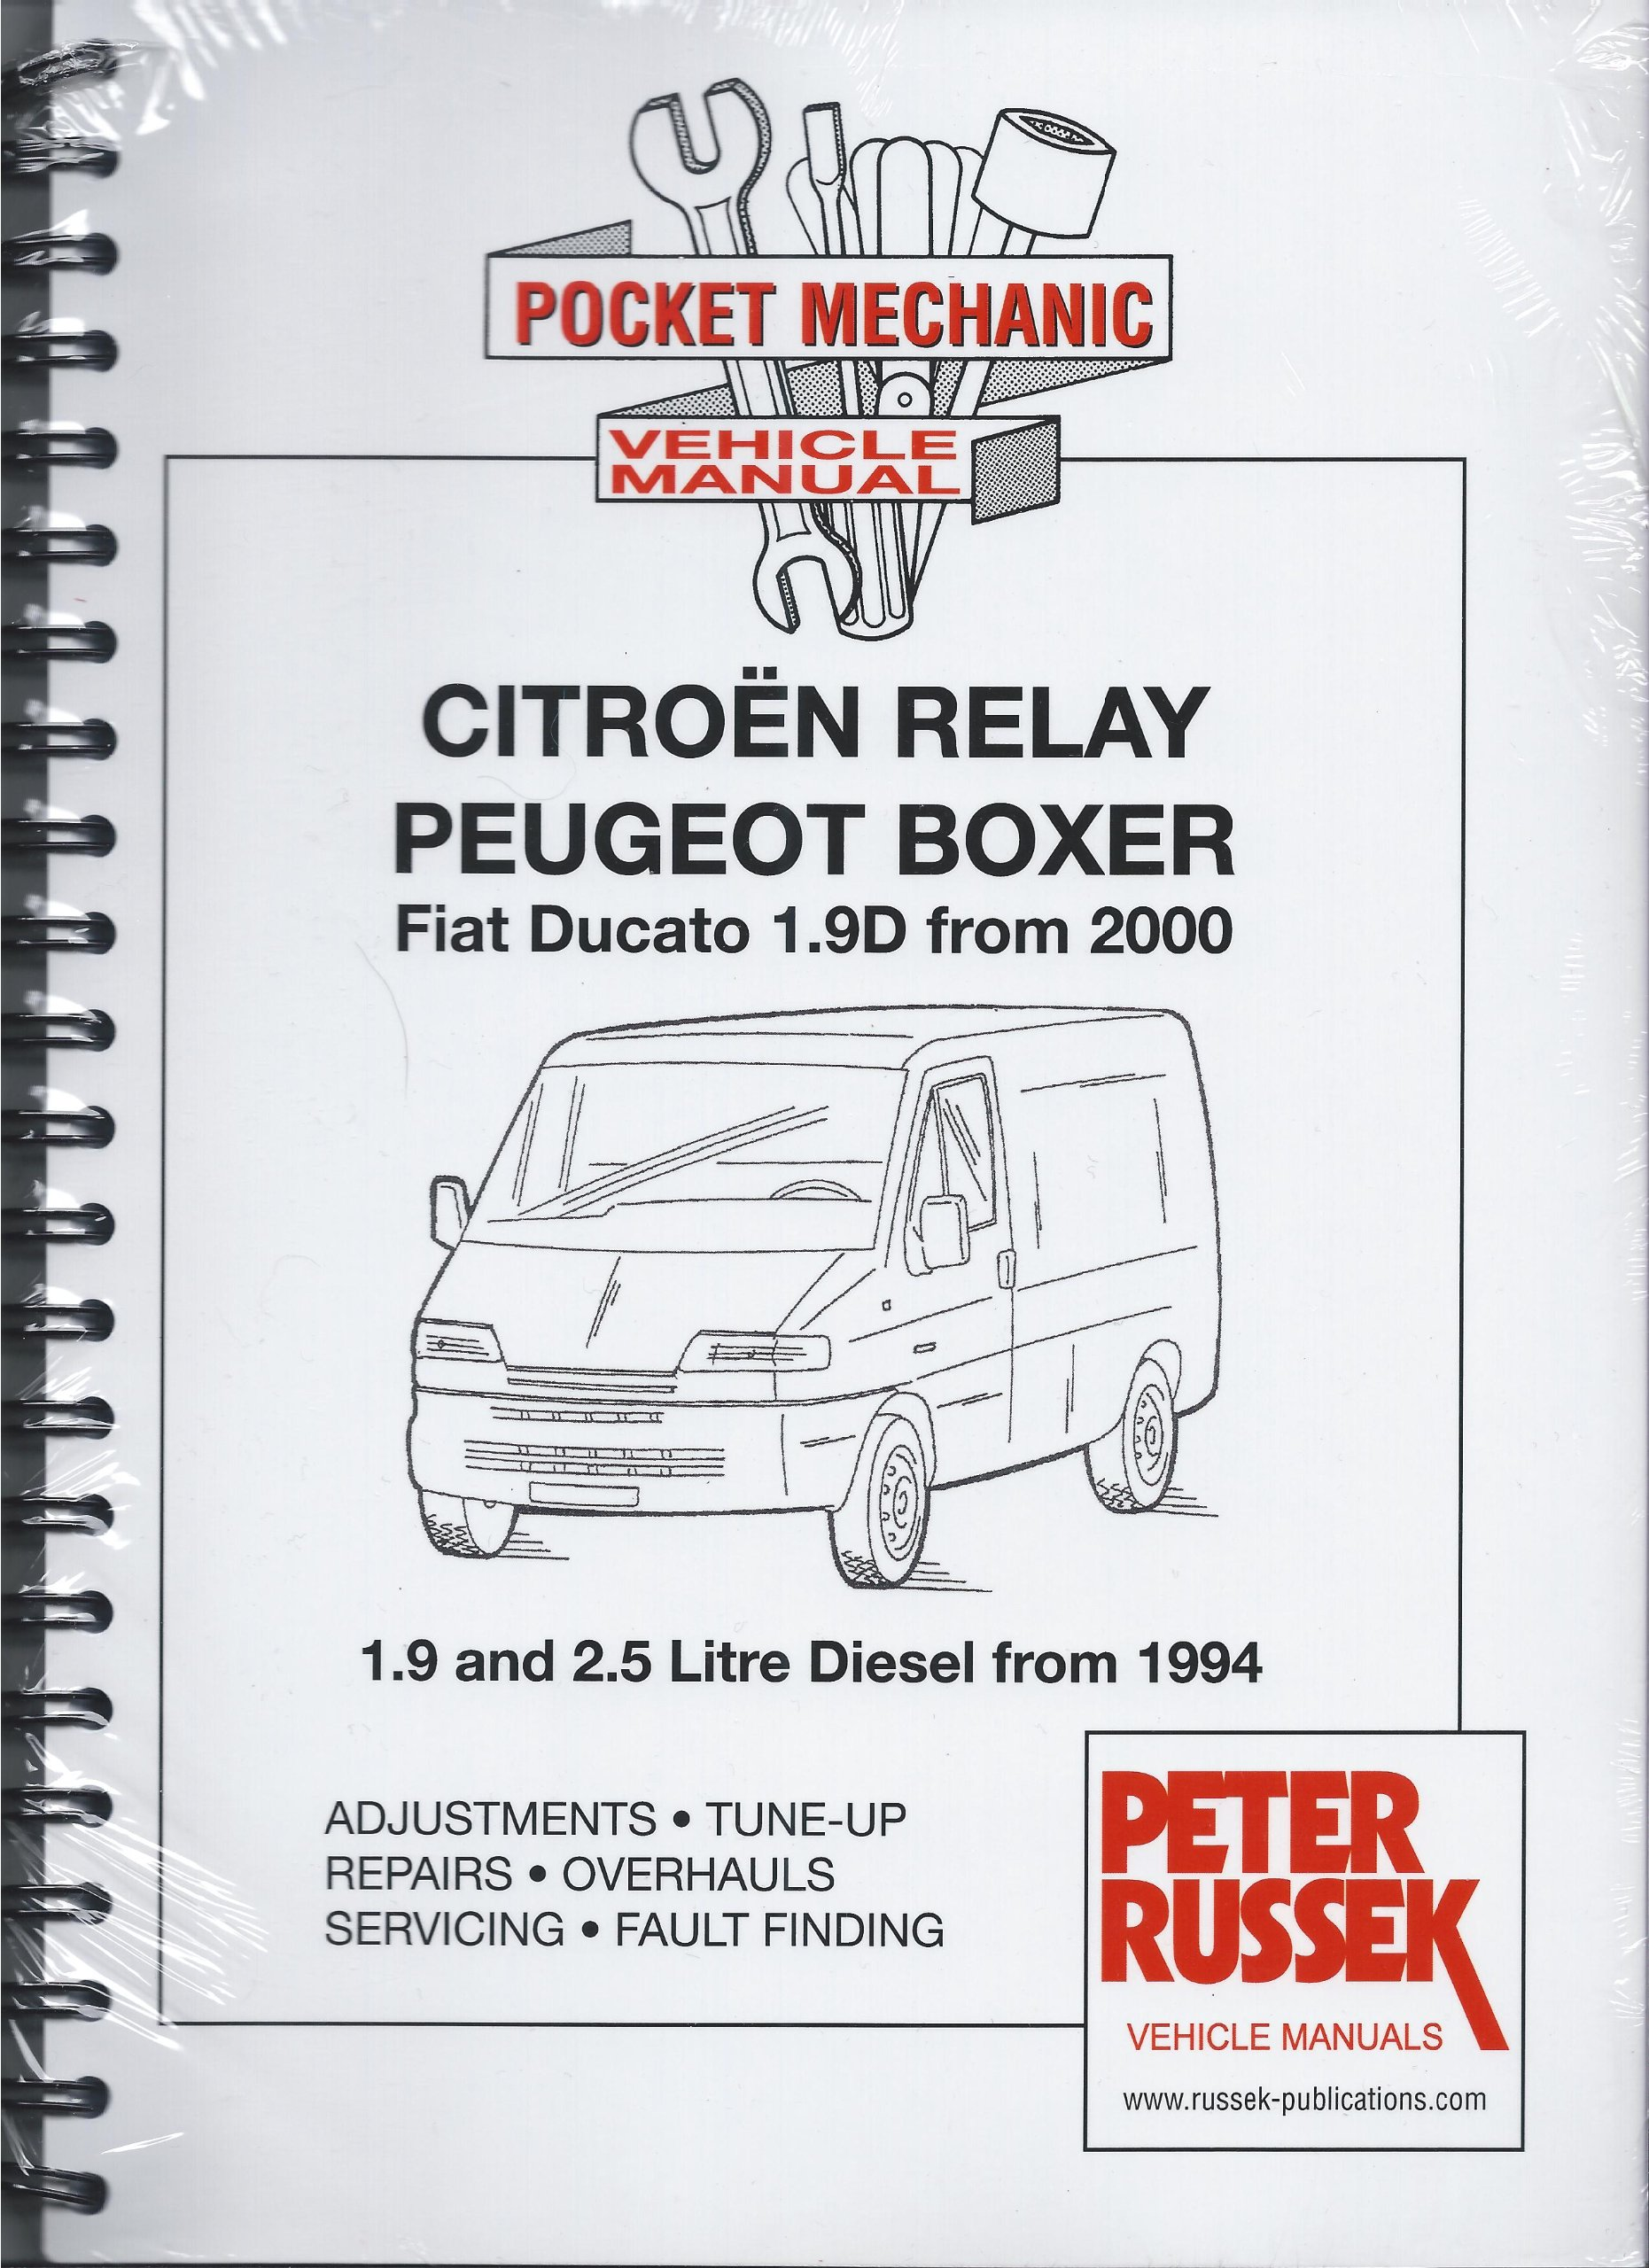 Citroen Relay Wiring Diagram 28 Images Peugeot 605 Fuse Box 91odzbczezl Boxer 1 9 2 5 Diesel From 94 Fiat